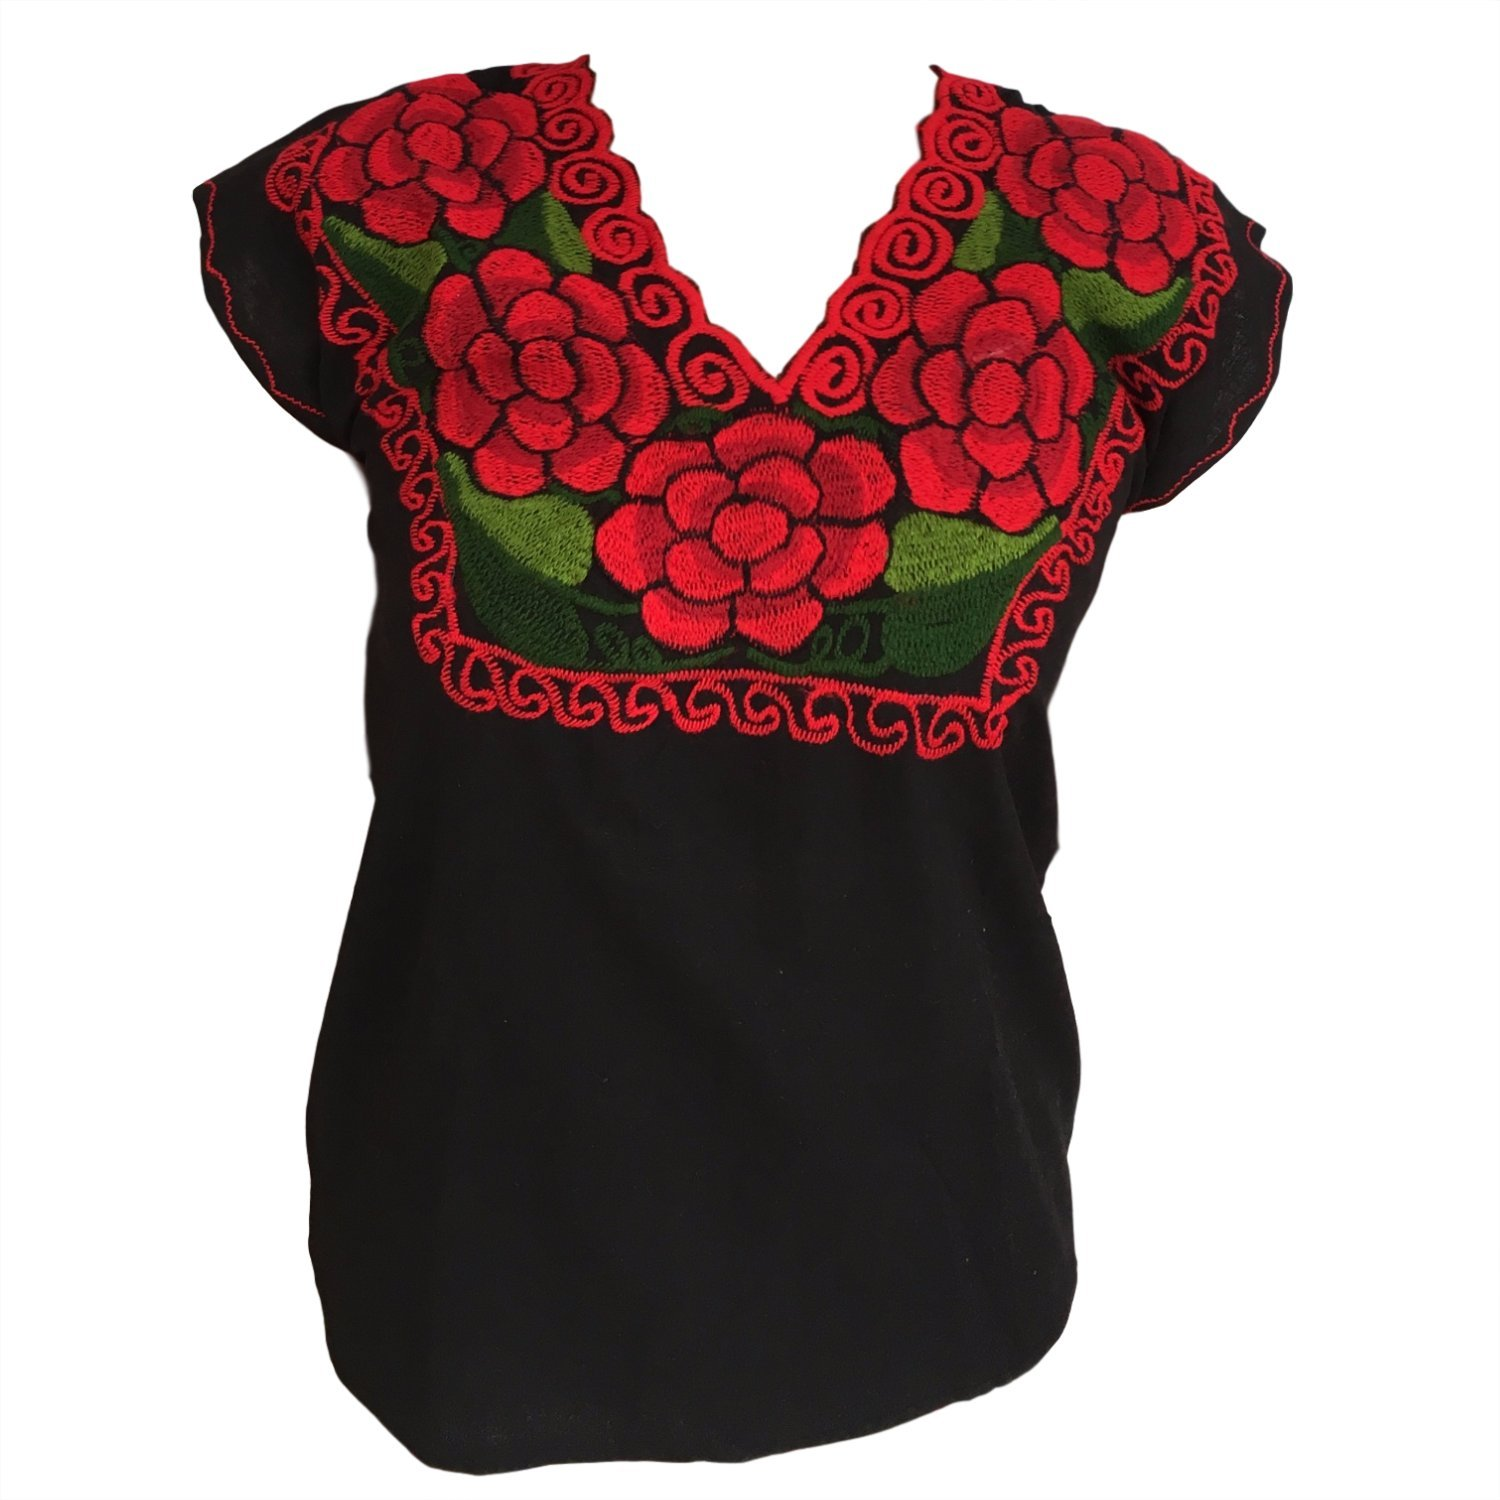 Casa Fiesta Designs Floral Mexican Blouse - Authentic Embroidered Chiapas Blouse - 100% Handmade - Black with Red Flowers (Large)